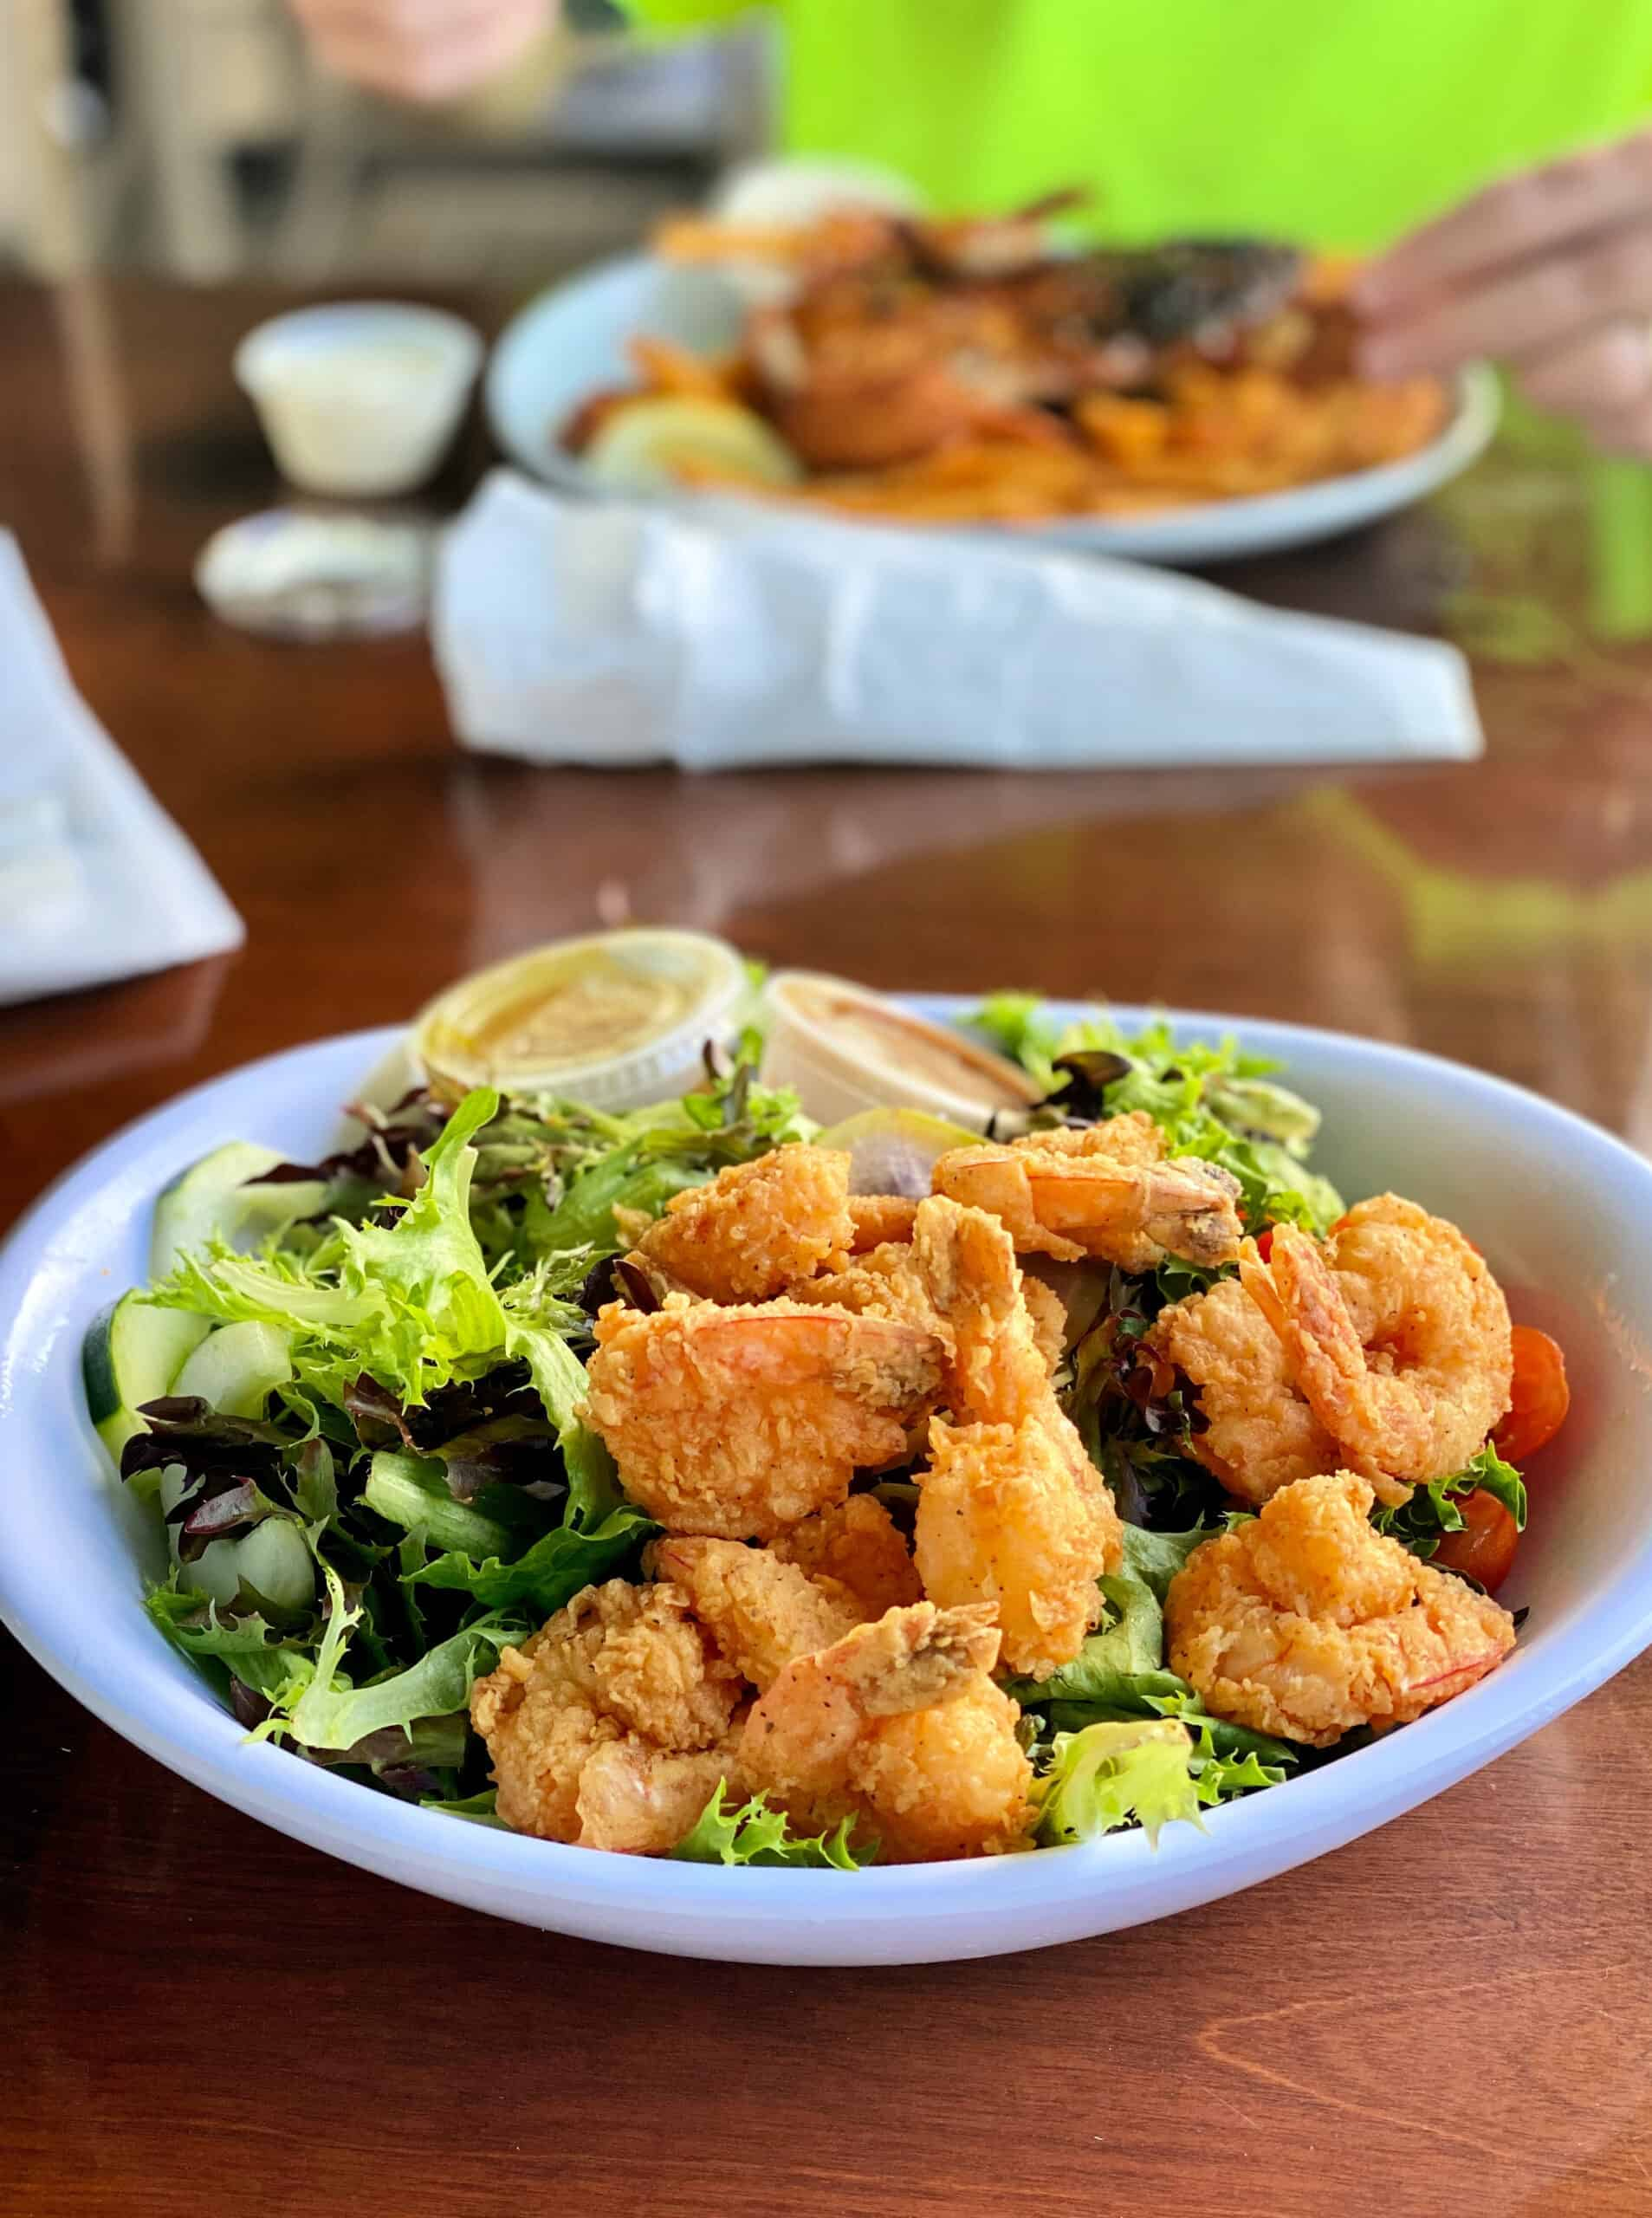 Salad bed of greens with fried shrimp